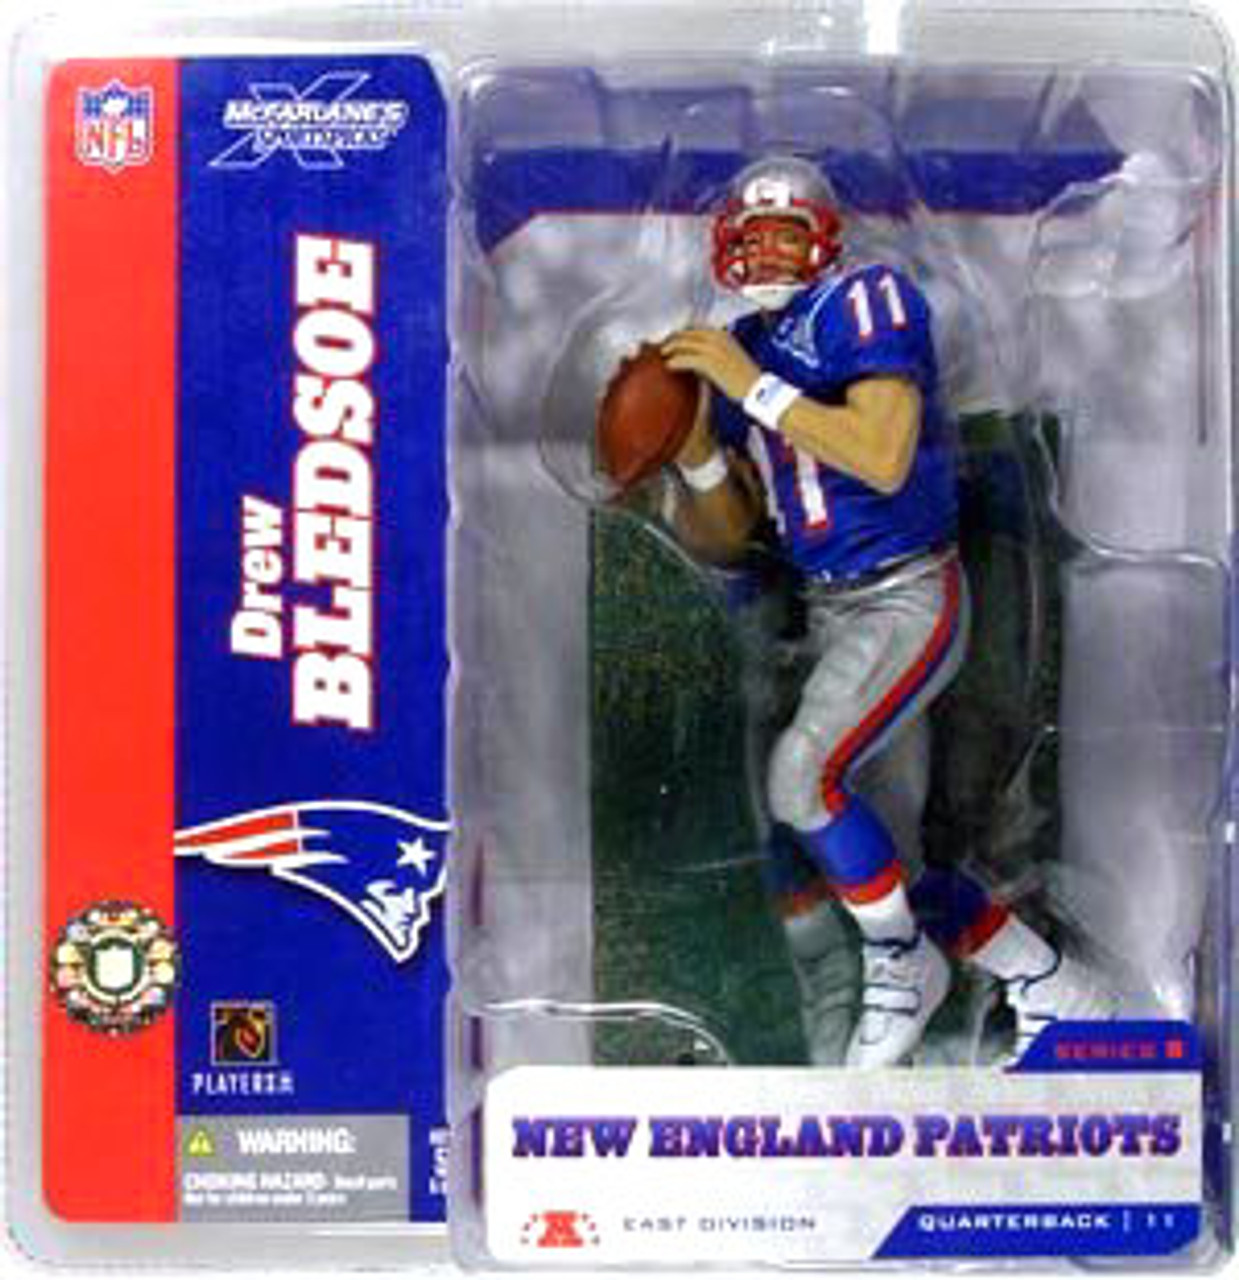 McFarlane Toys NFL New England Patriots Sports Picks Series 8 Drew Bledsoe Action Figure [Blue Jersey Retro Variant]